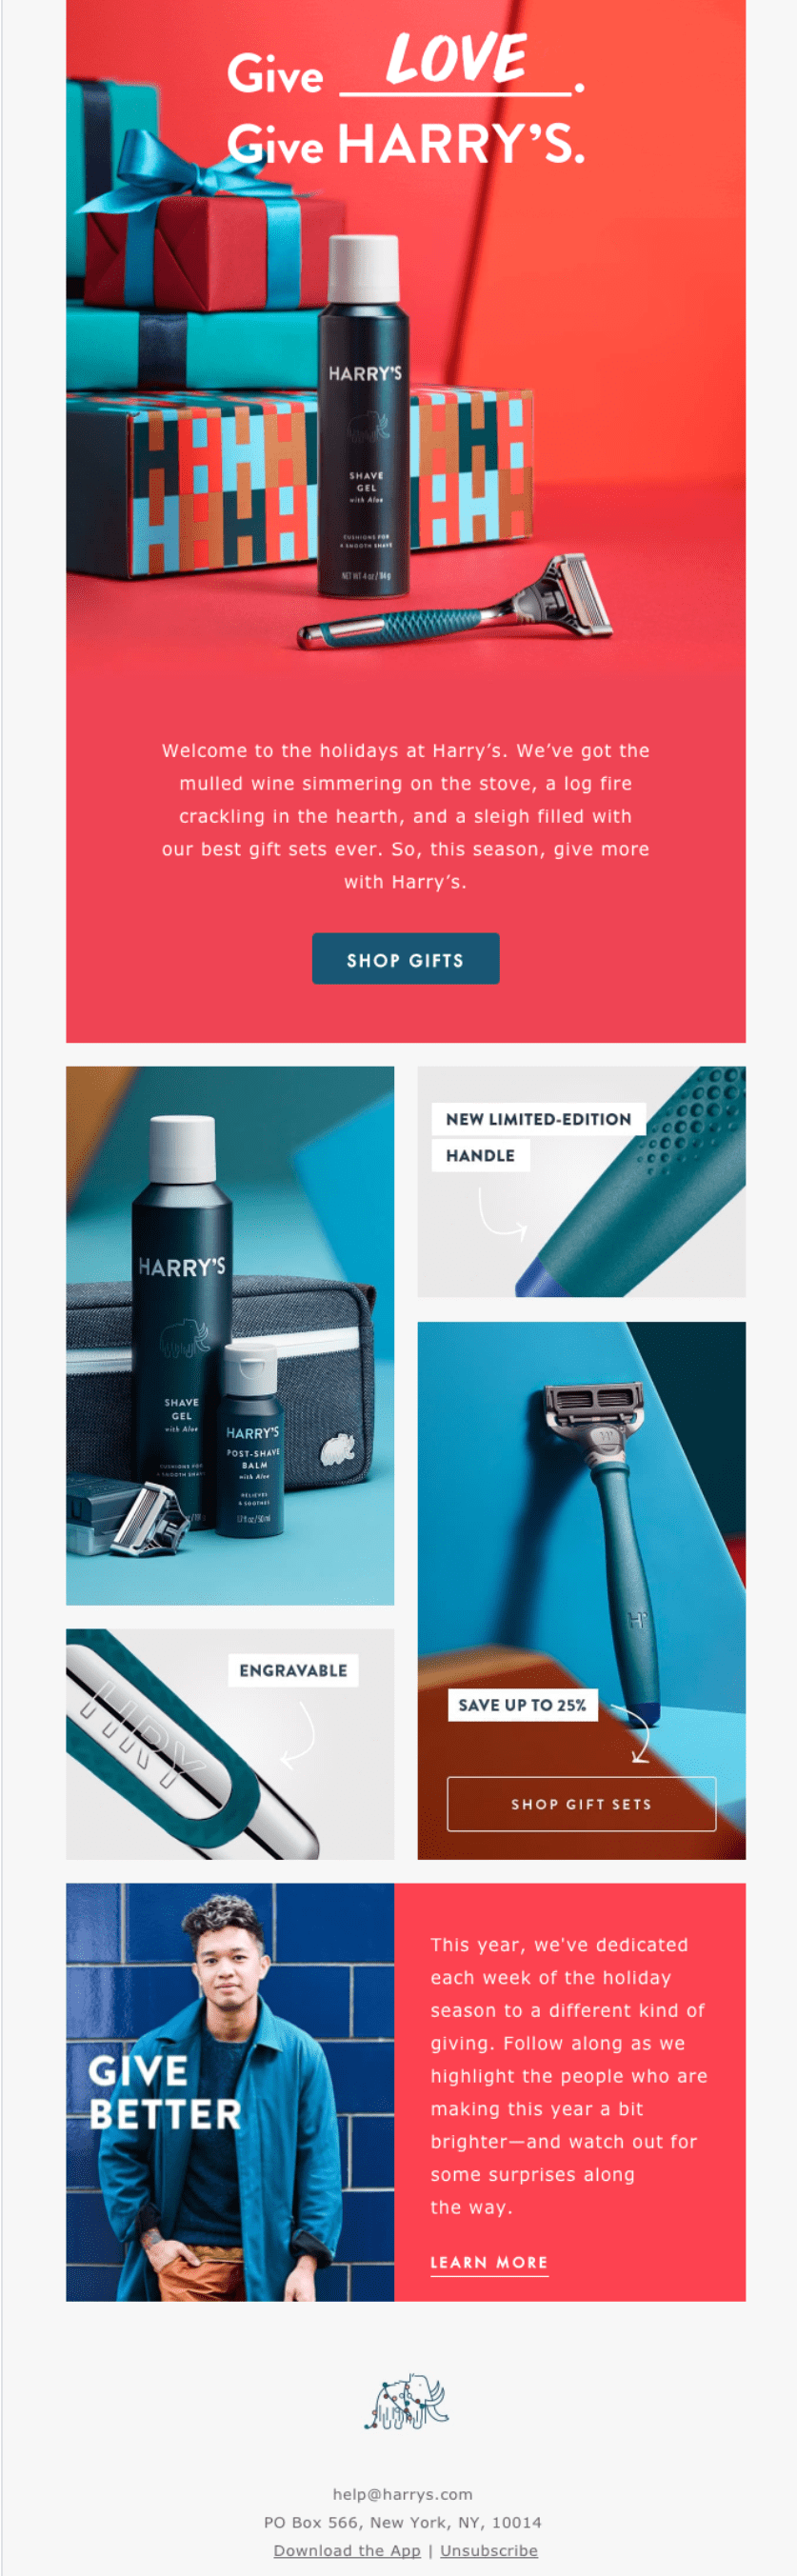 Holiday email from Harry's targeting customers who need to buy a gift for a man (suggested gifts: razors, shaving sets)